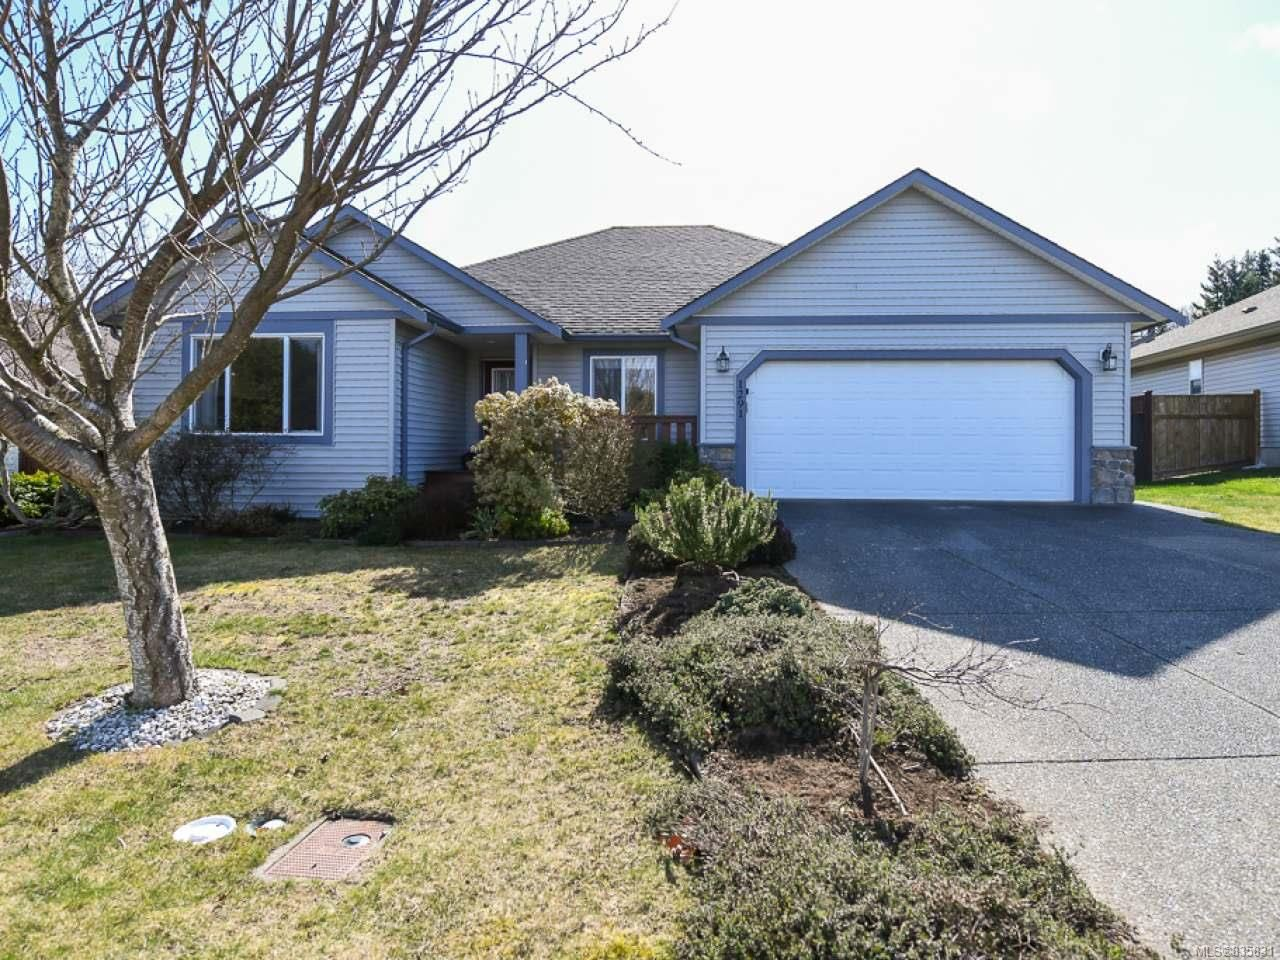 Main Photo: 1291 Noel Ave in COMOX: CV Comox (Town of) House for sale (Comox Valley)  : MLS®# 835831